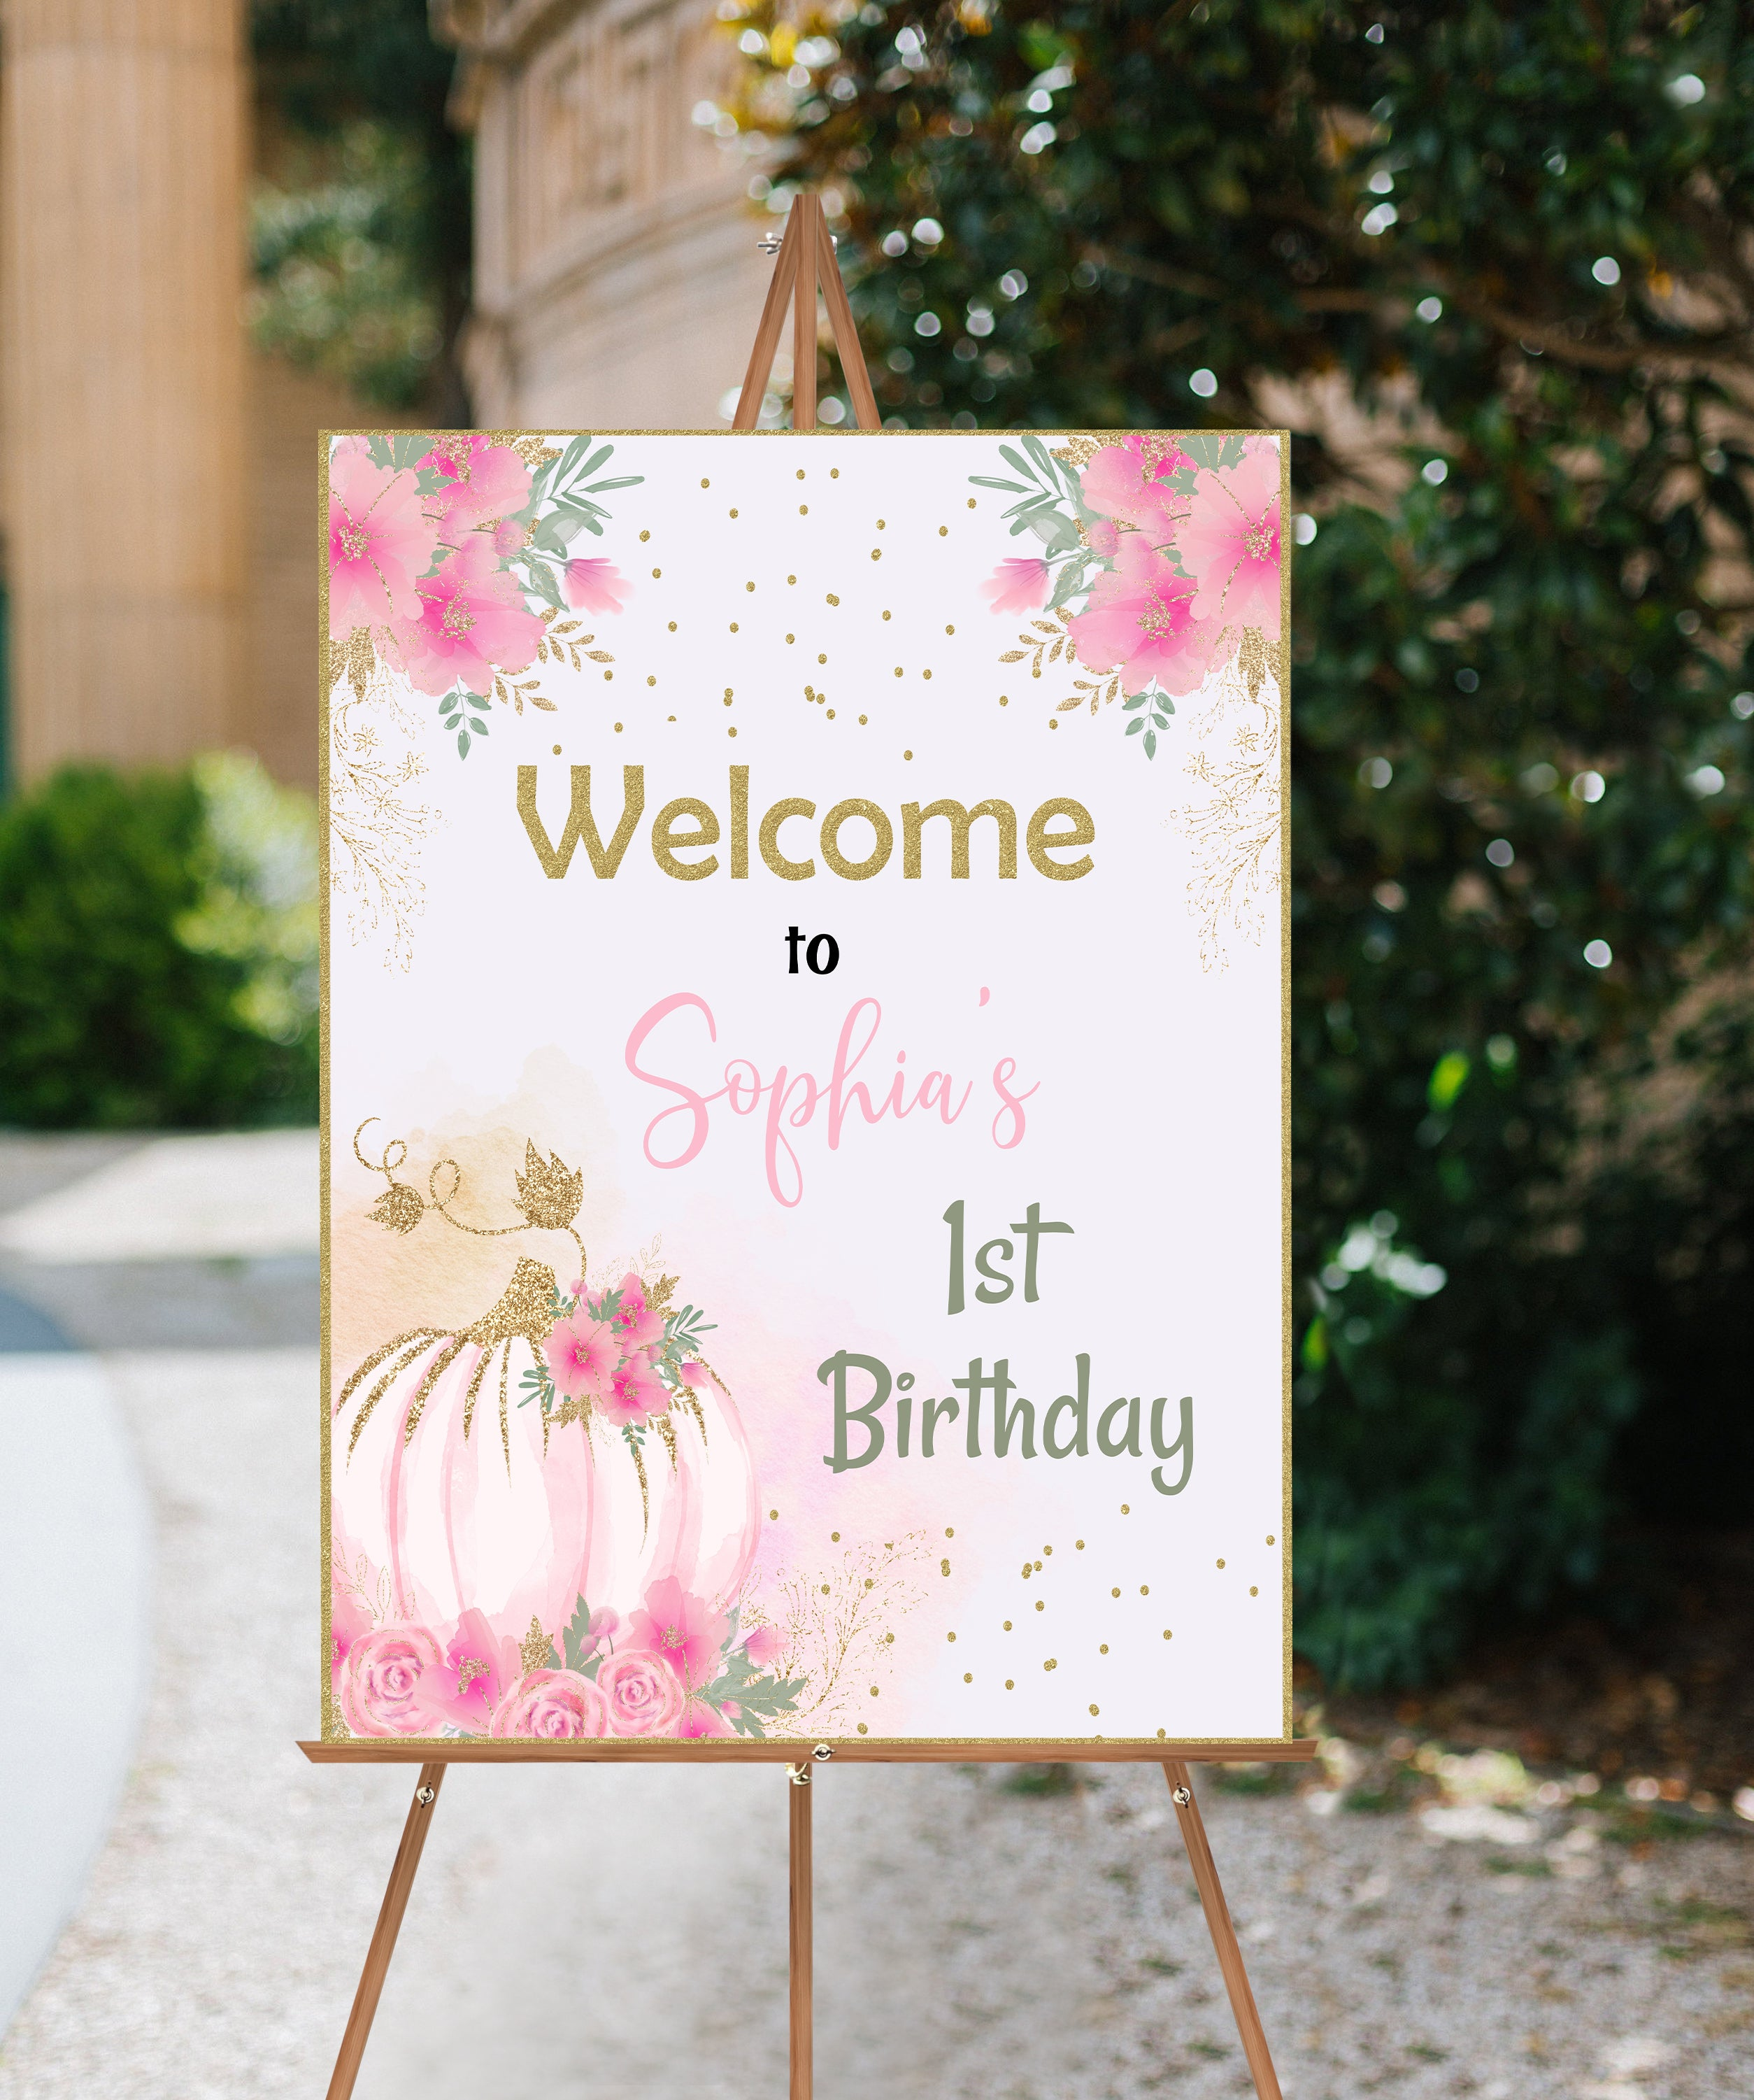 Editable Pumpkin Welcome Sign First Birthday | Fall Theme Birthday Decorations - 30C